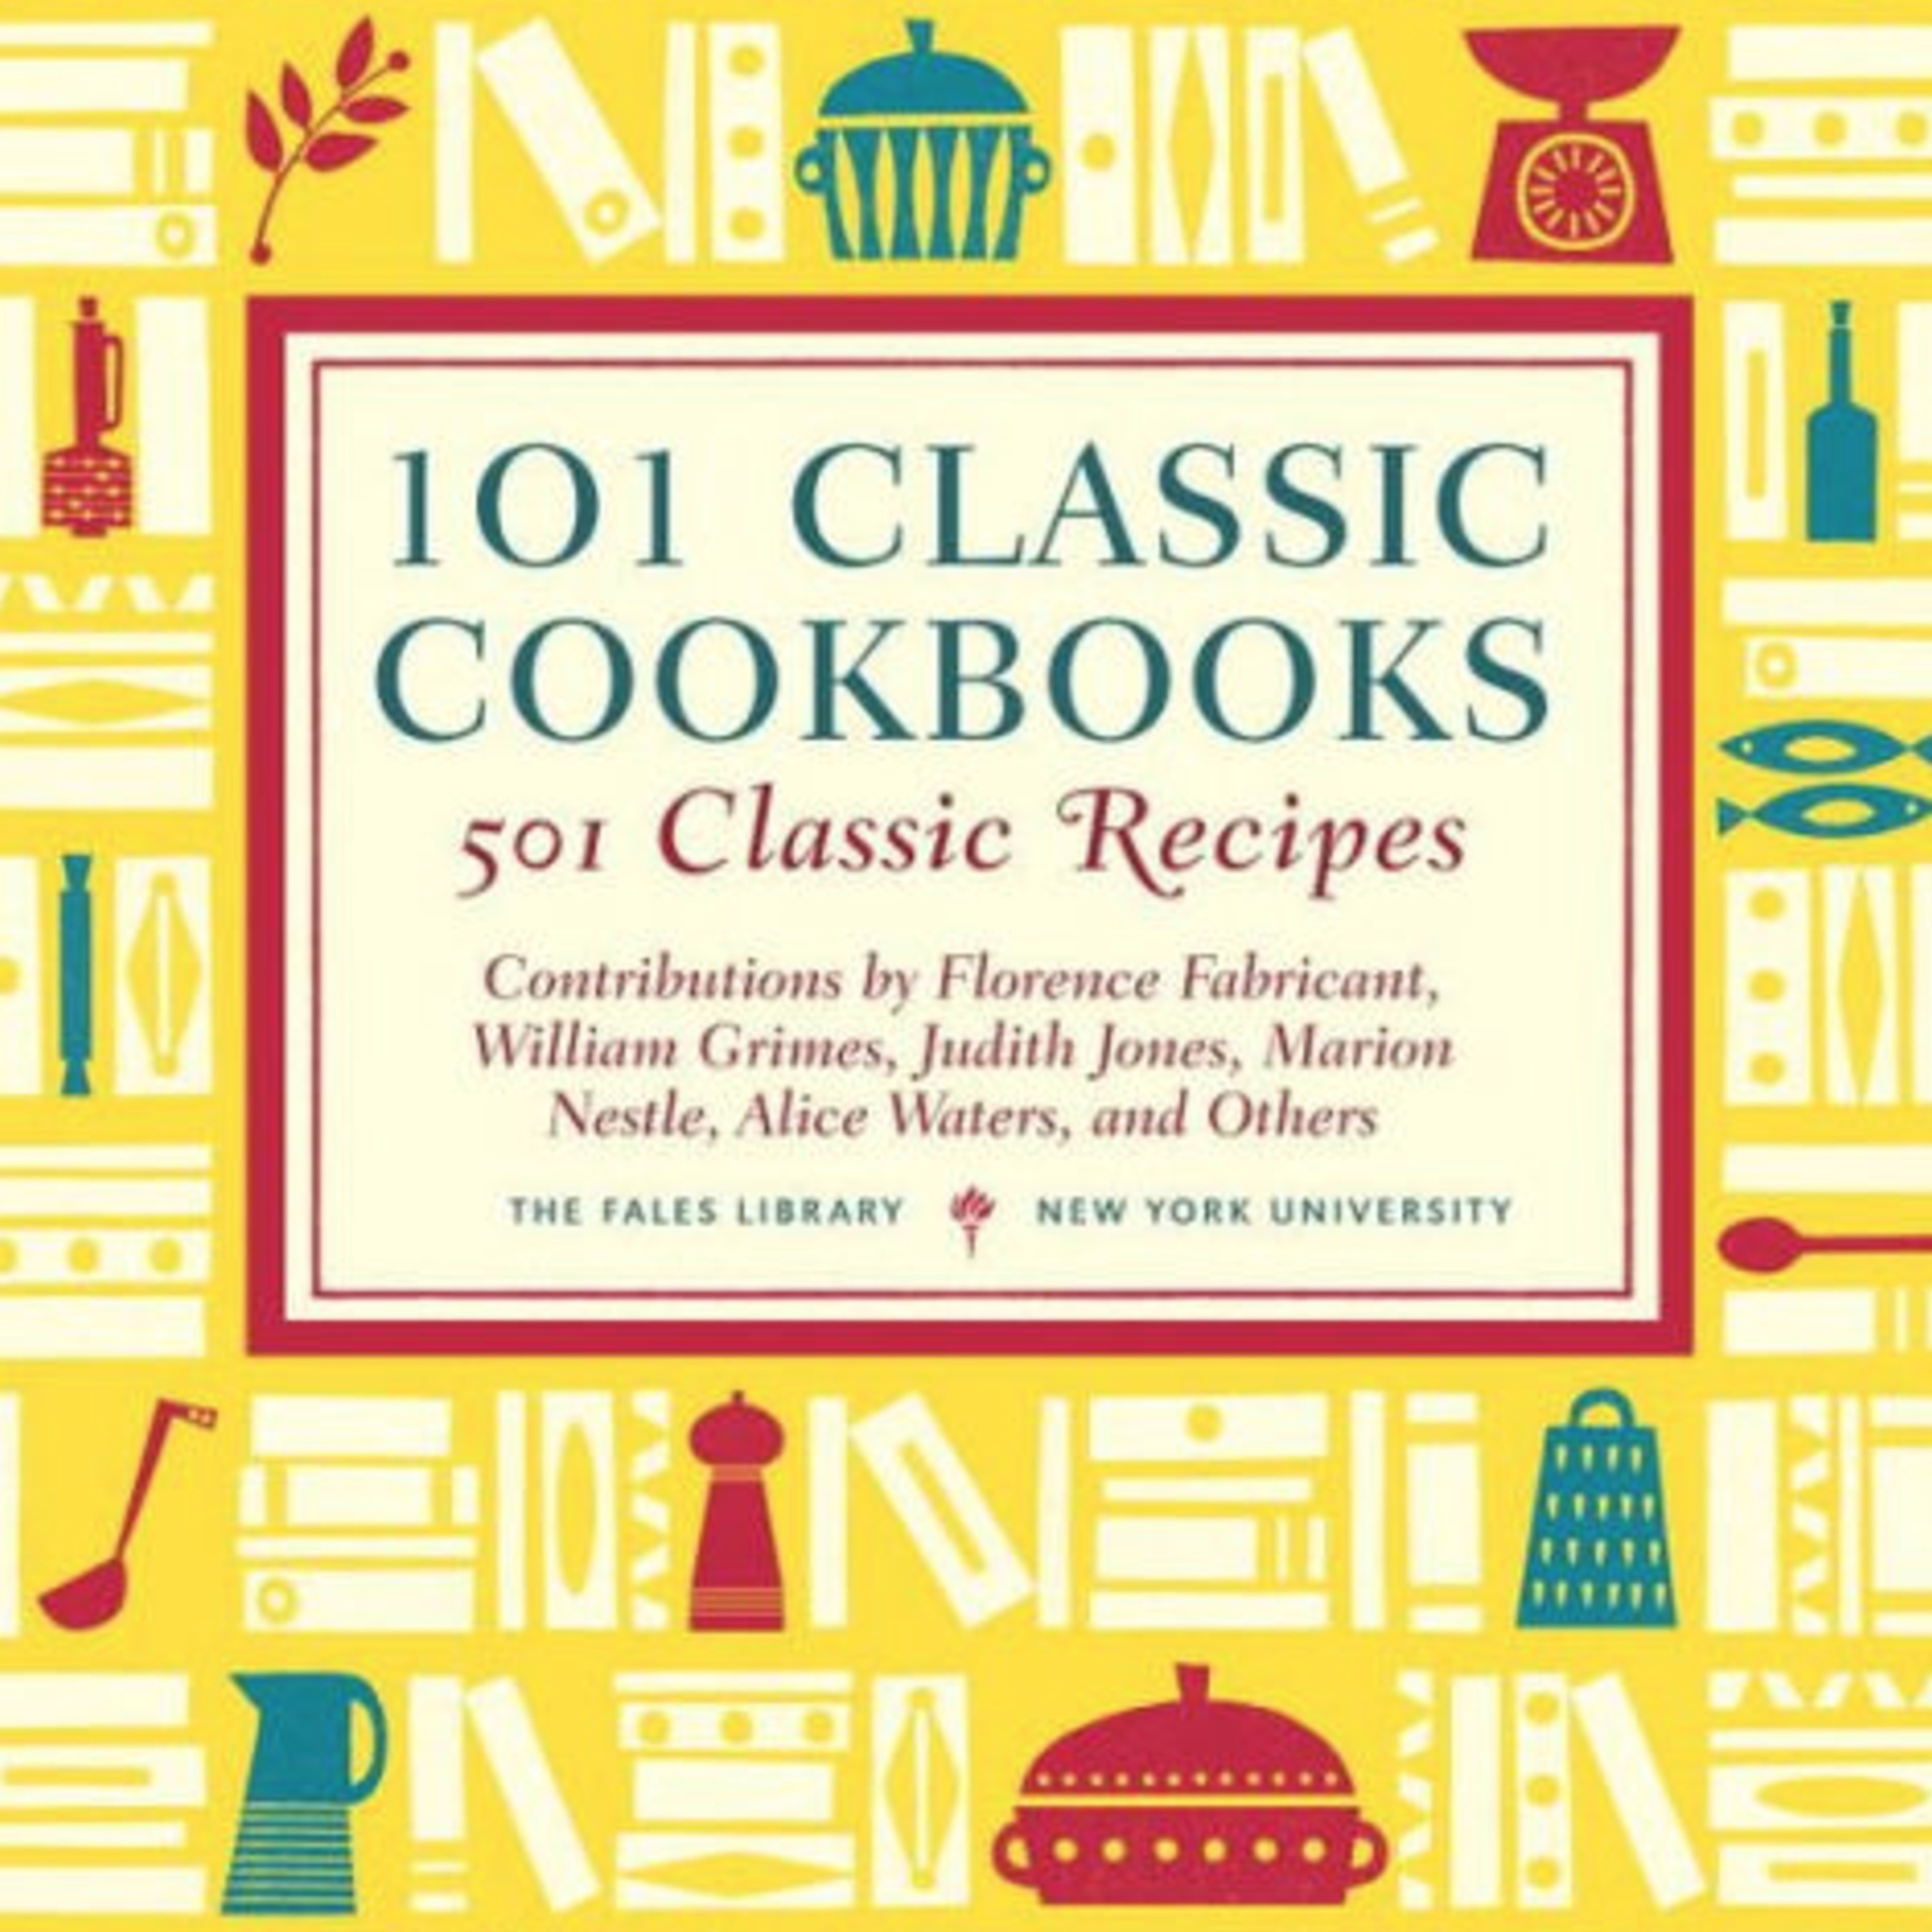 Episode 293: What Makes a Cookbook a Classic?